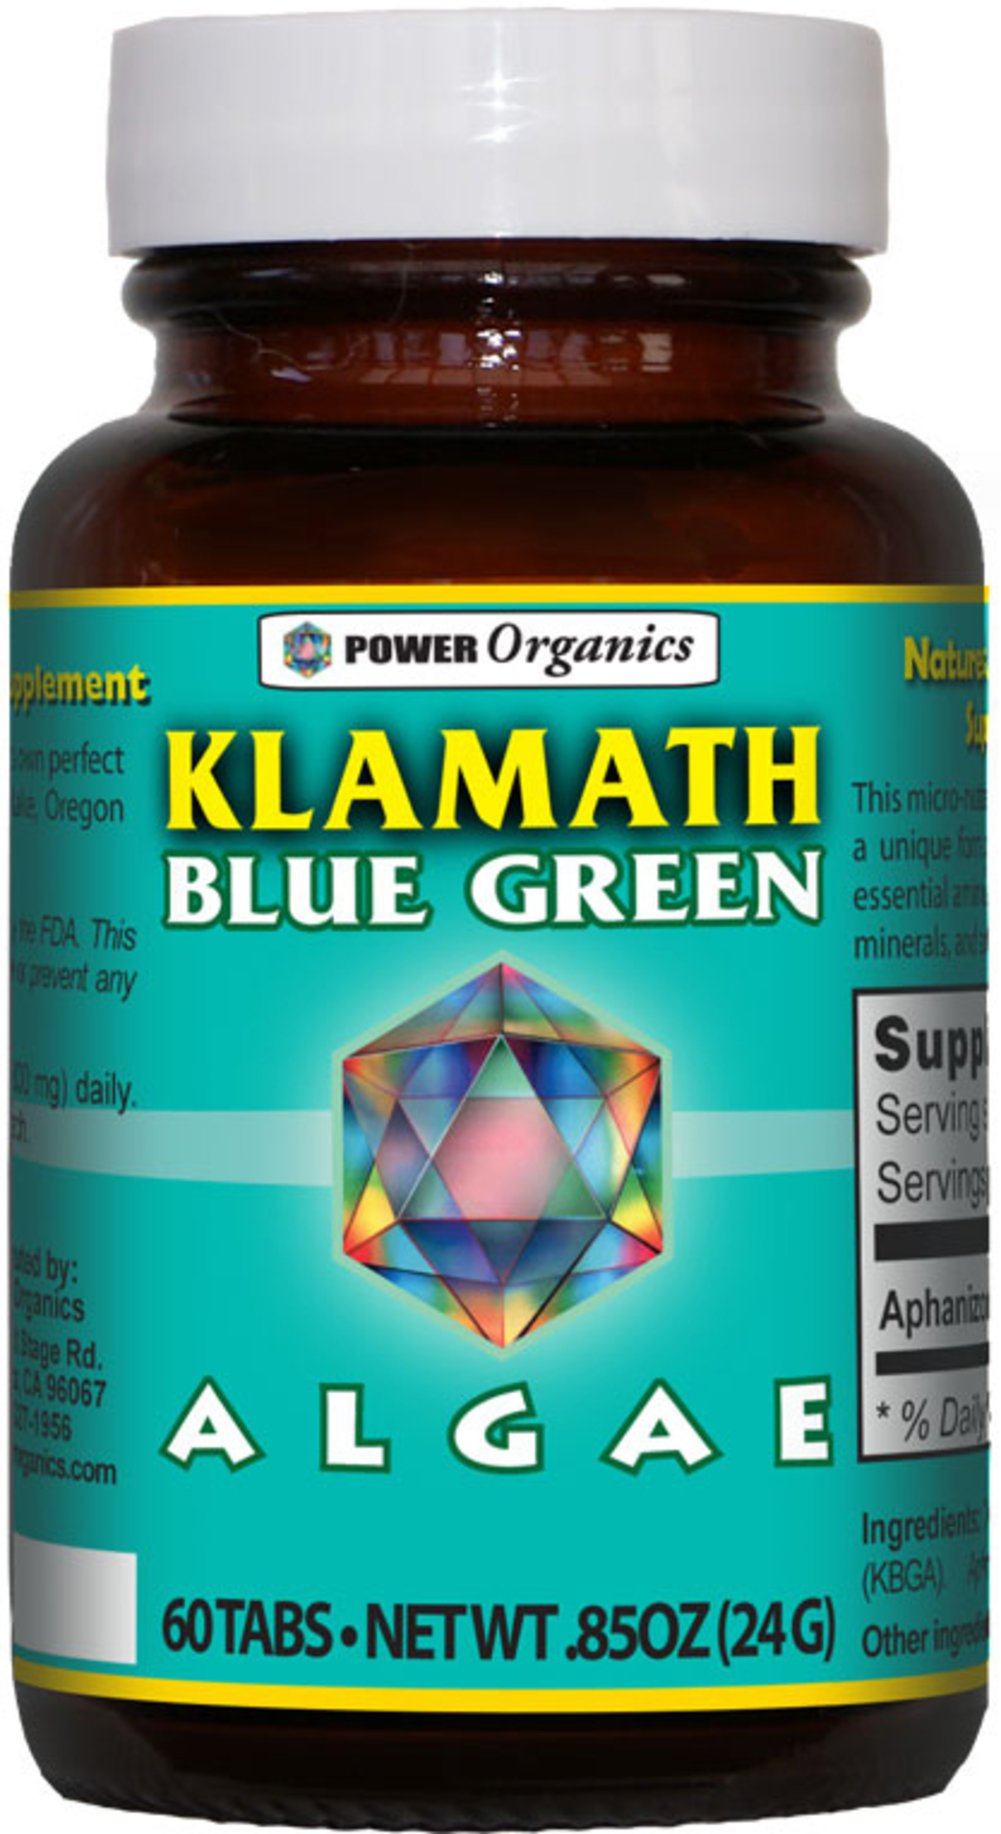 Klamath Blue Green Algae Superfood